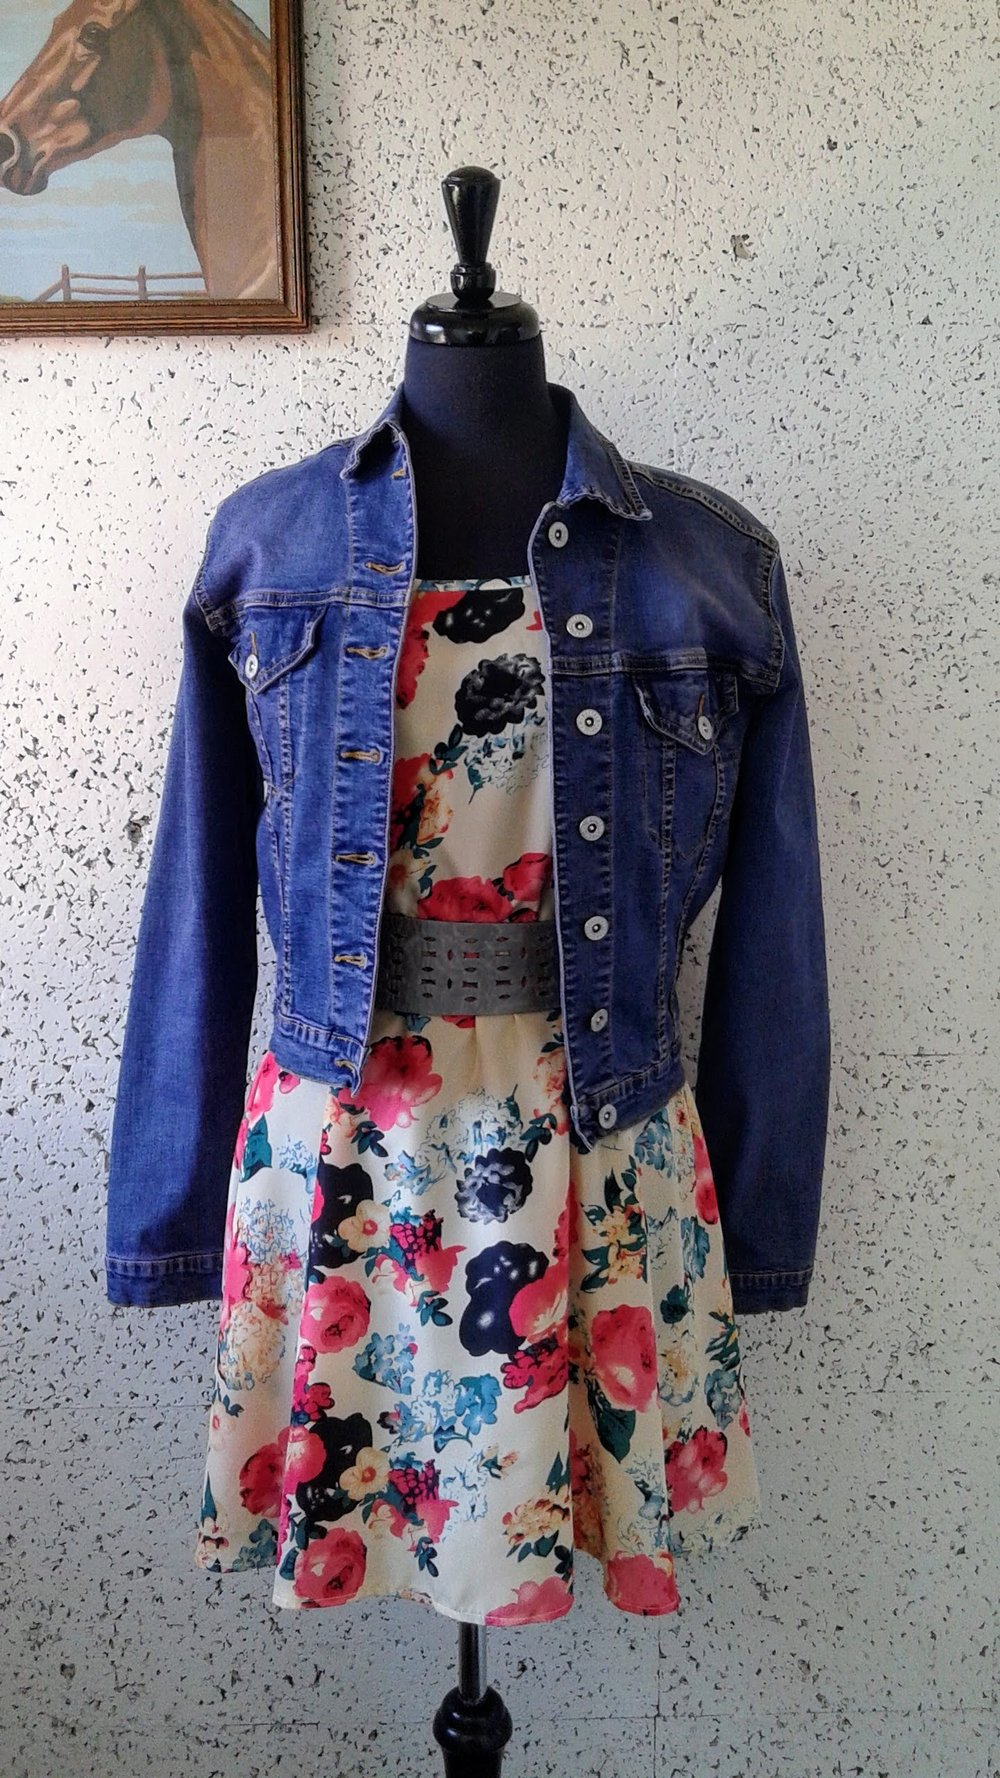 Buffalo denim jacket; Size S, $26. Lava Girl dress; Size M, $22; Ada belt, $40